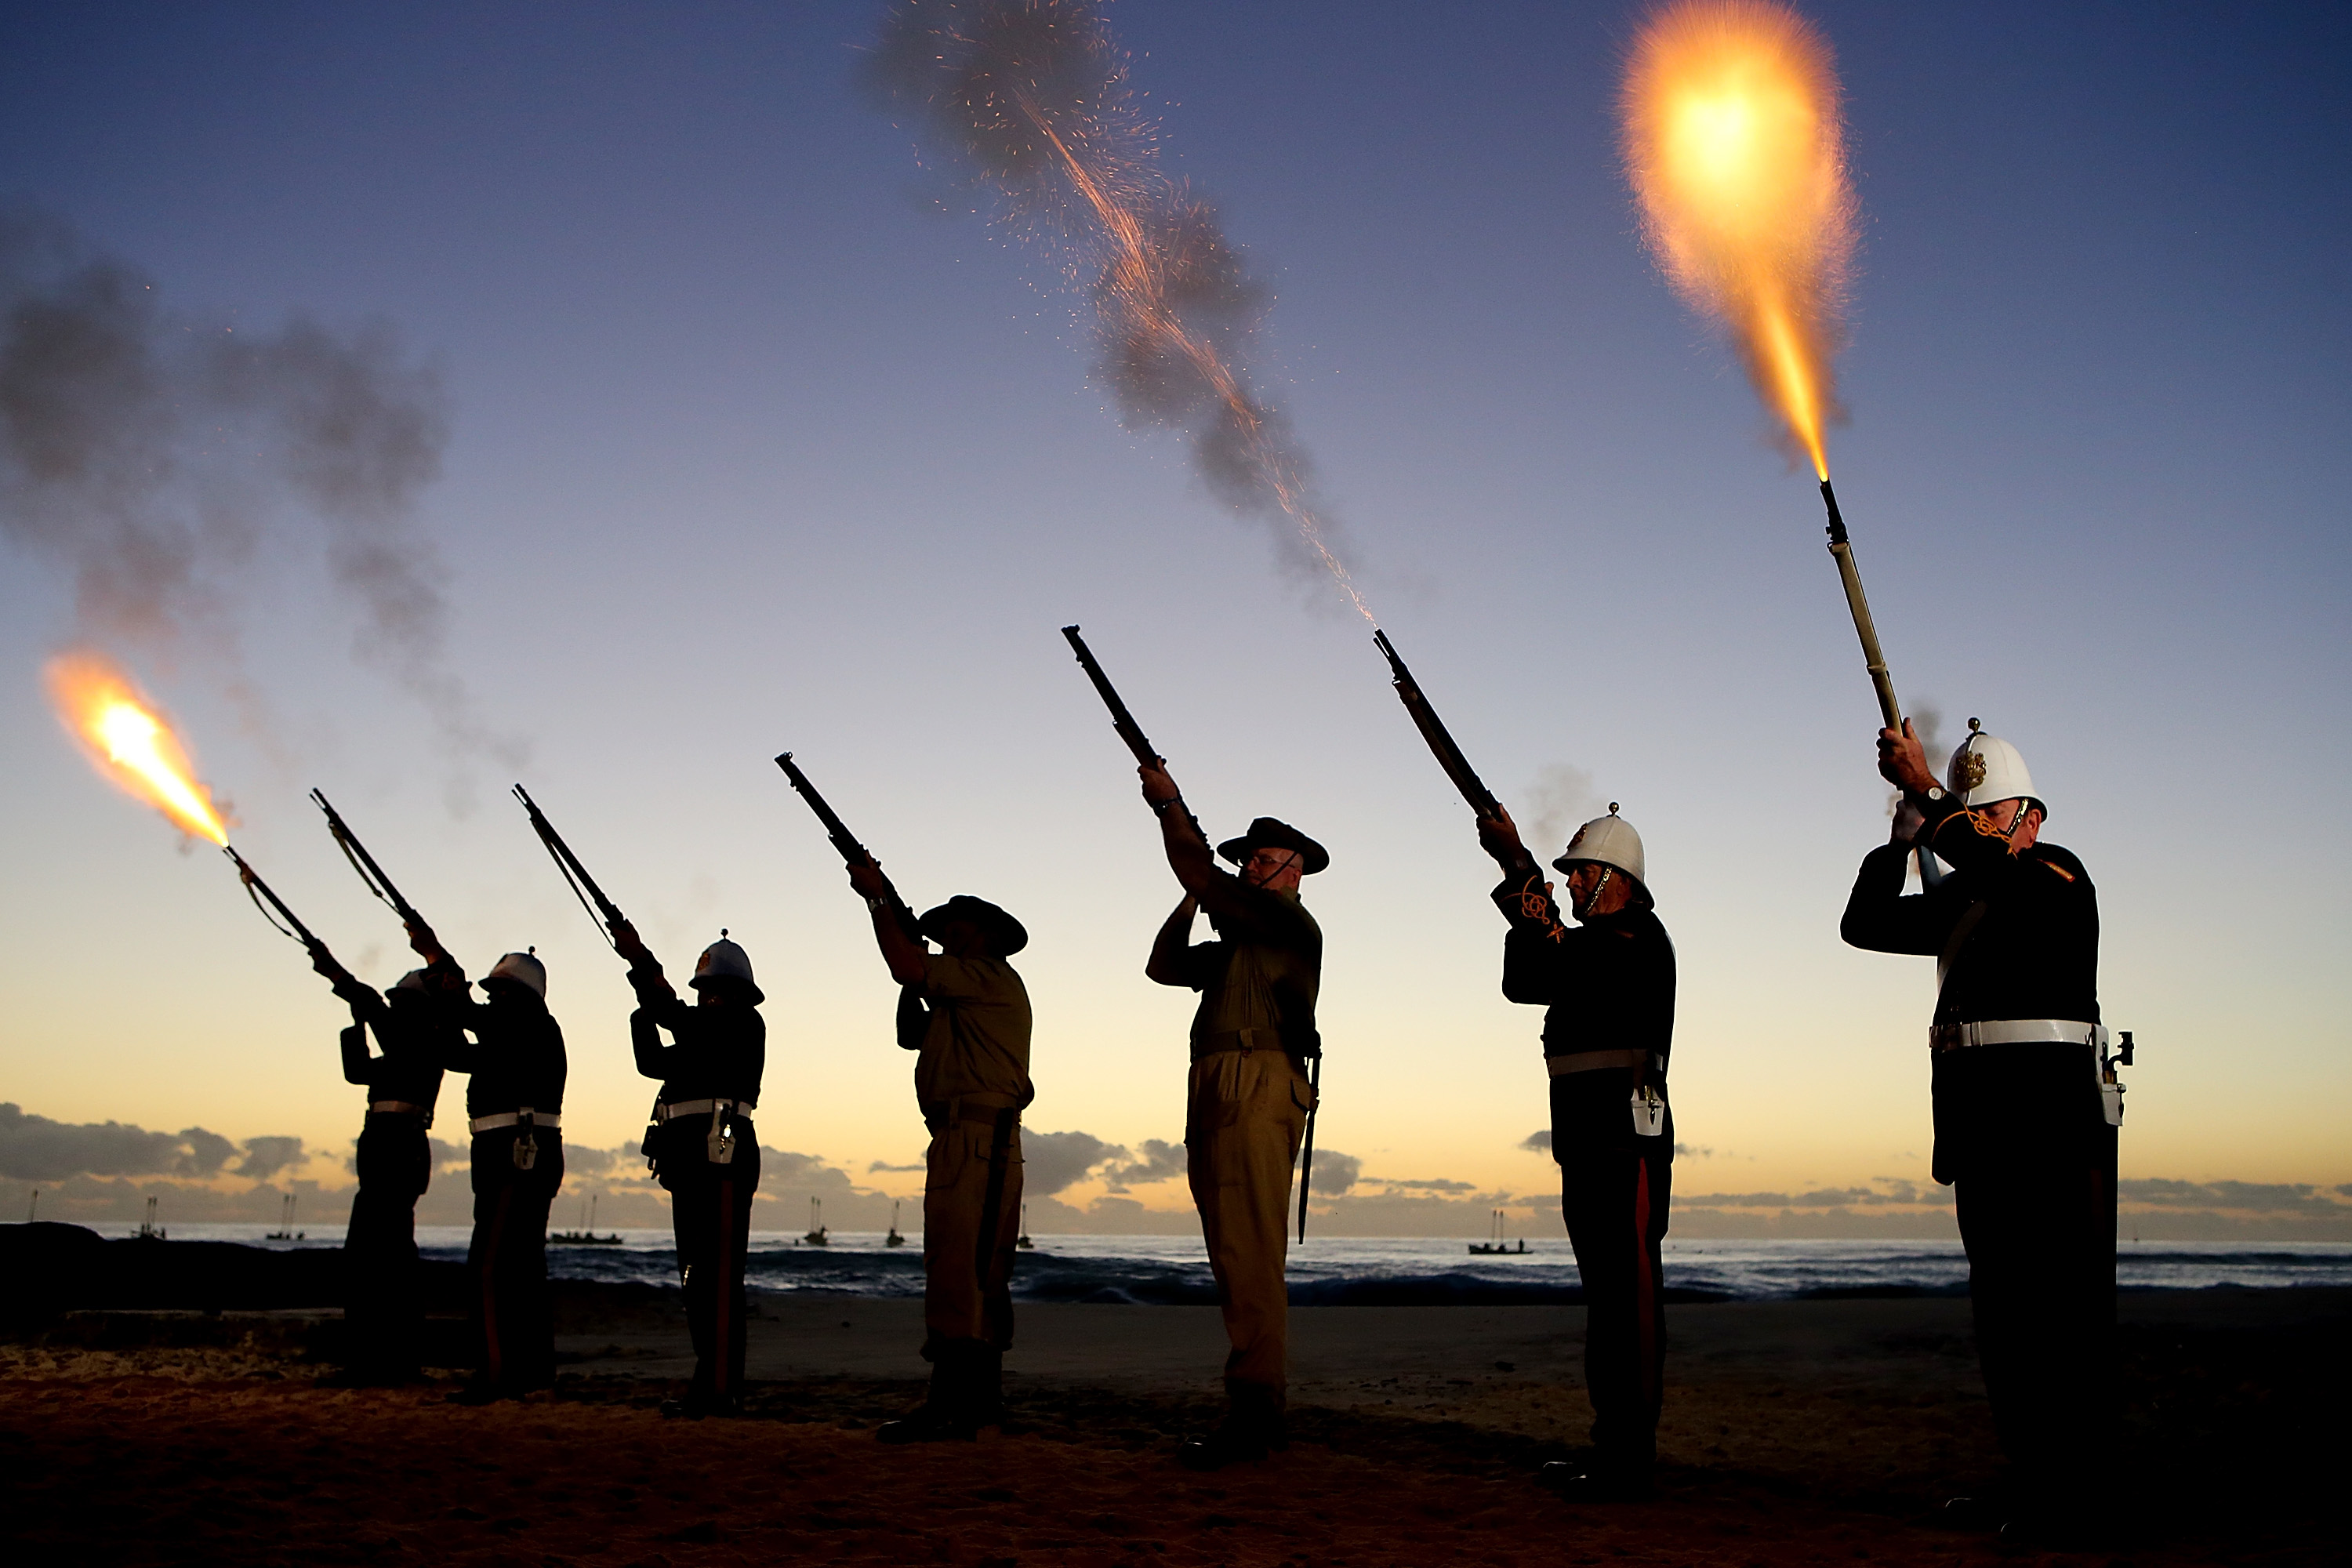 Rifle volley salute